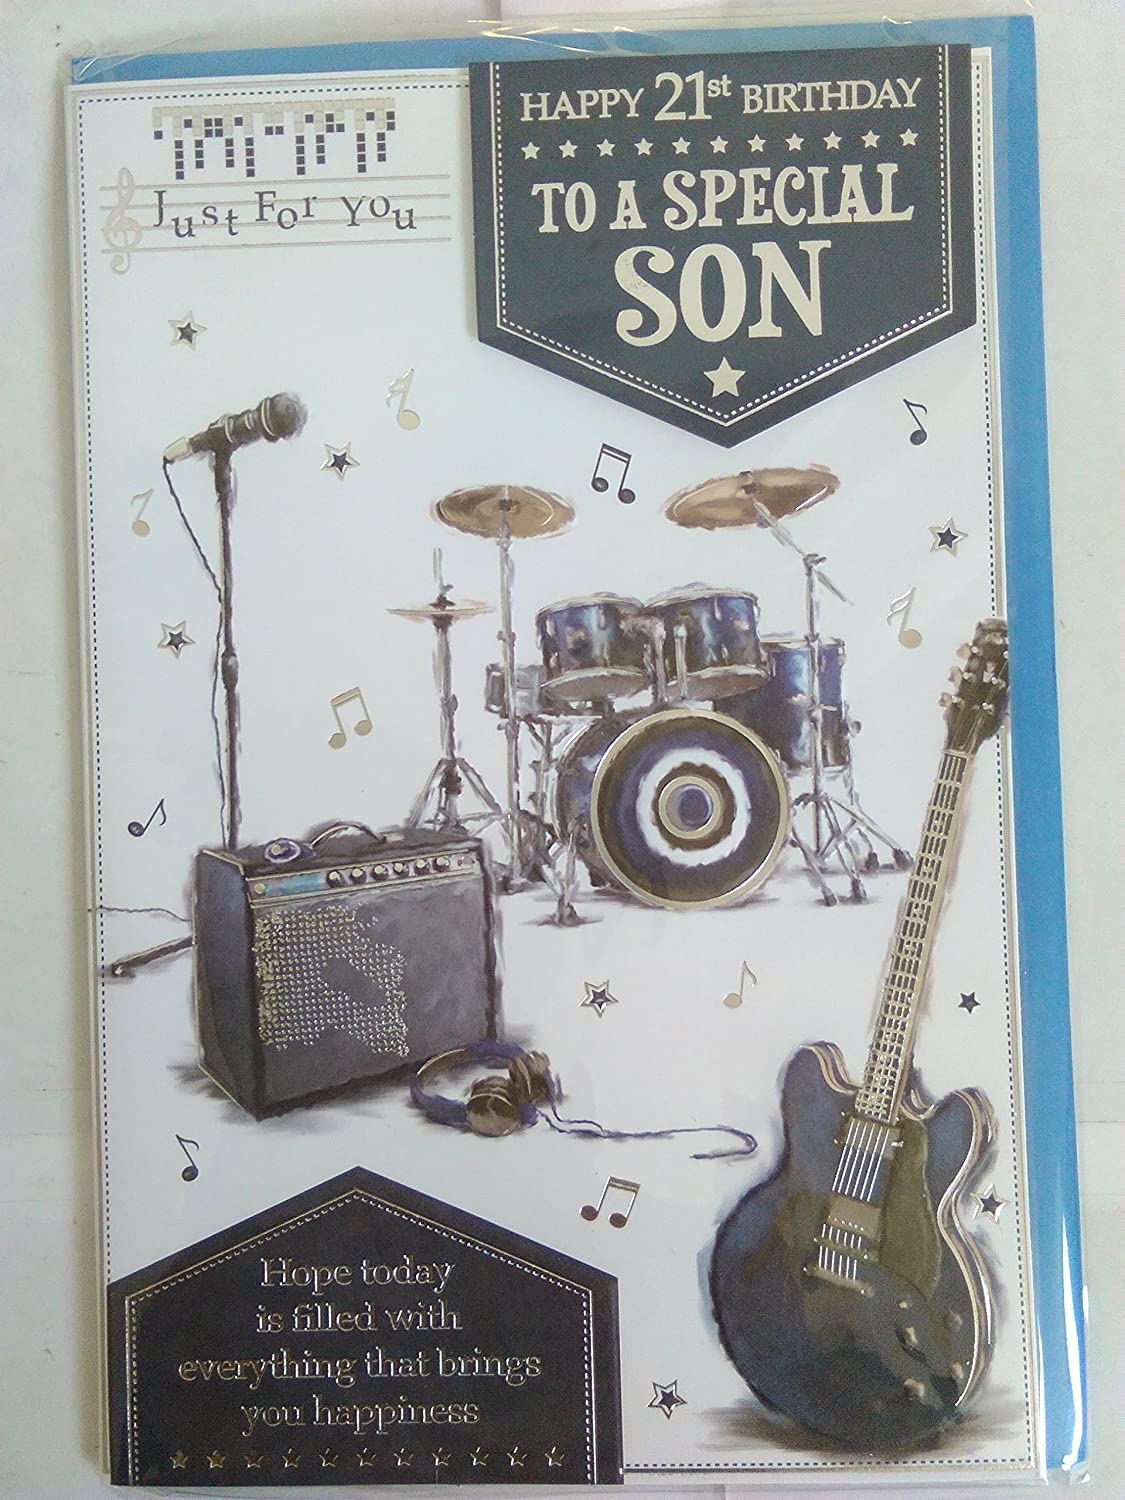 Just For You Happy 21st Birthday To A Special Son Card 21 Twenty One White Blue Silver Guitar Drums 3D Foil Detail Amazoncouk Office Products